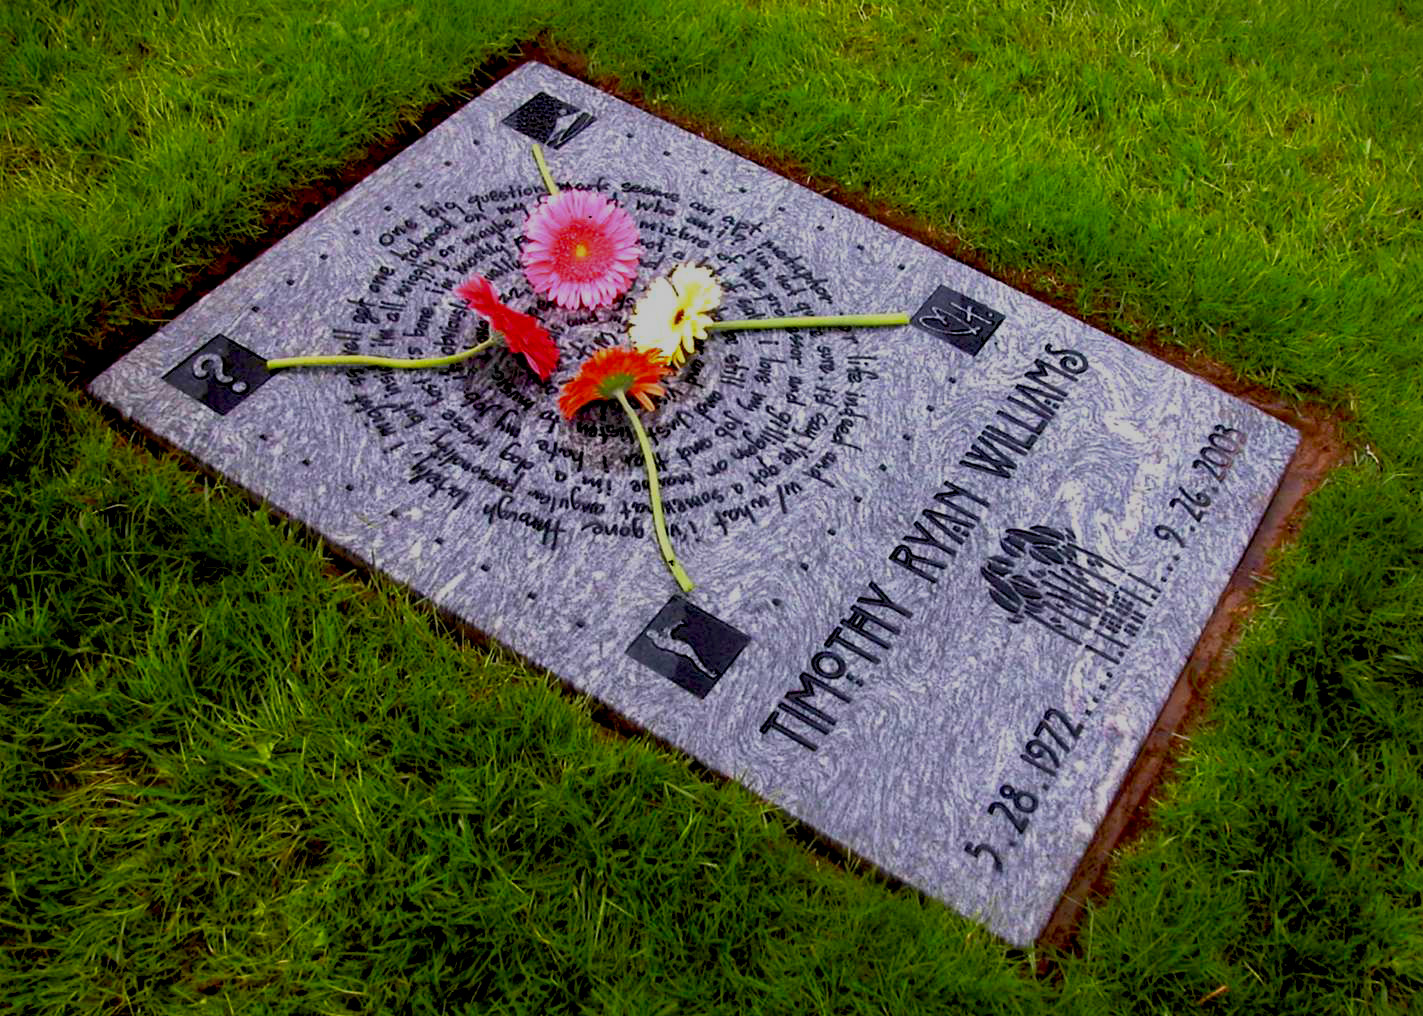 An in ground memorial for Timothy Williams